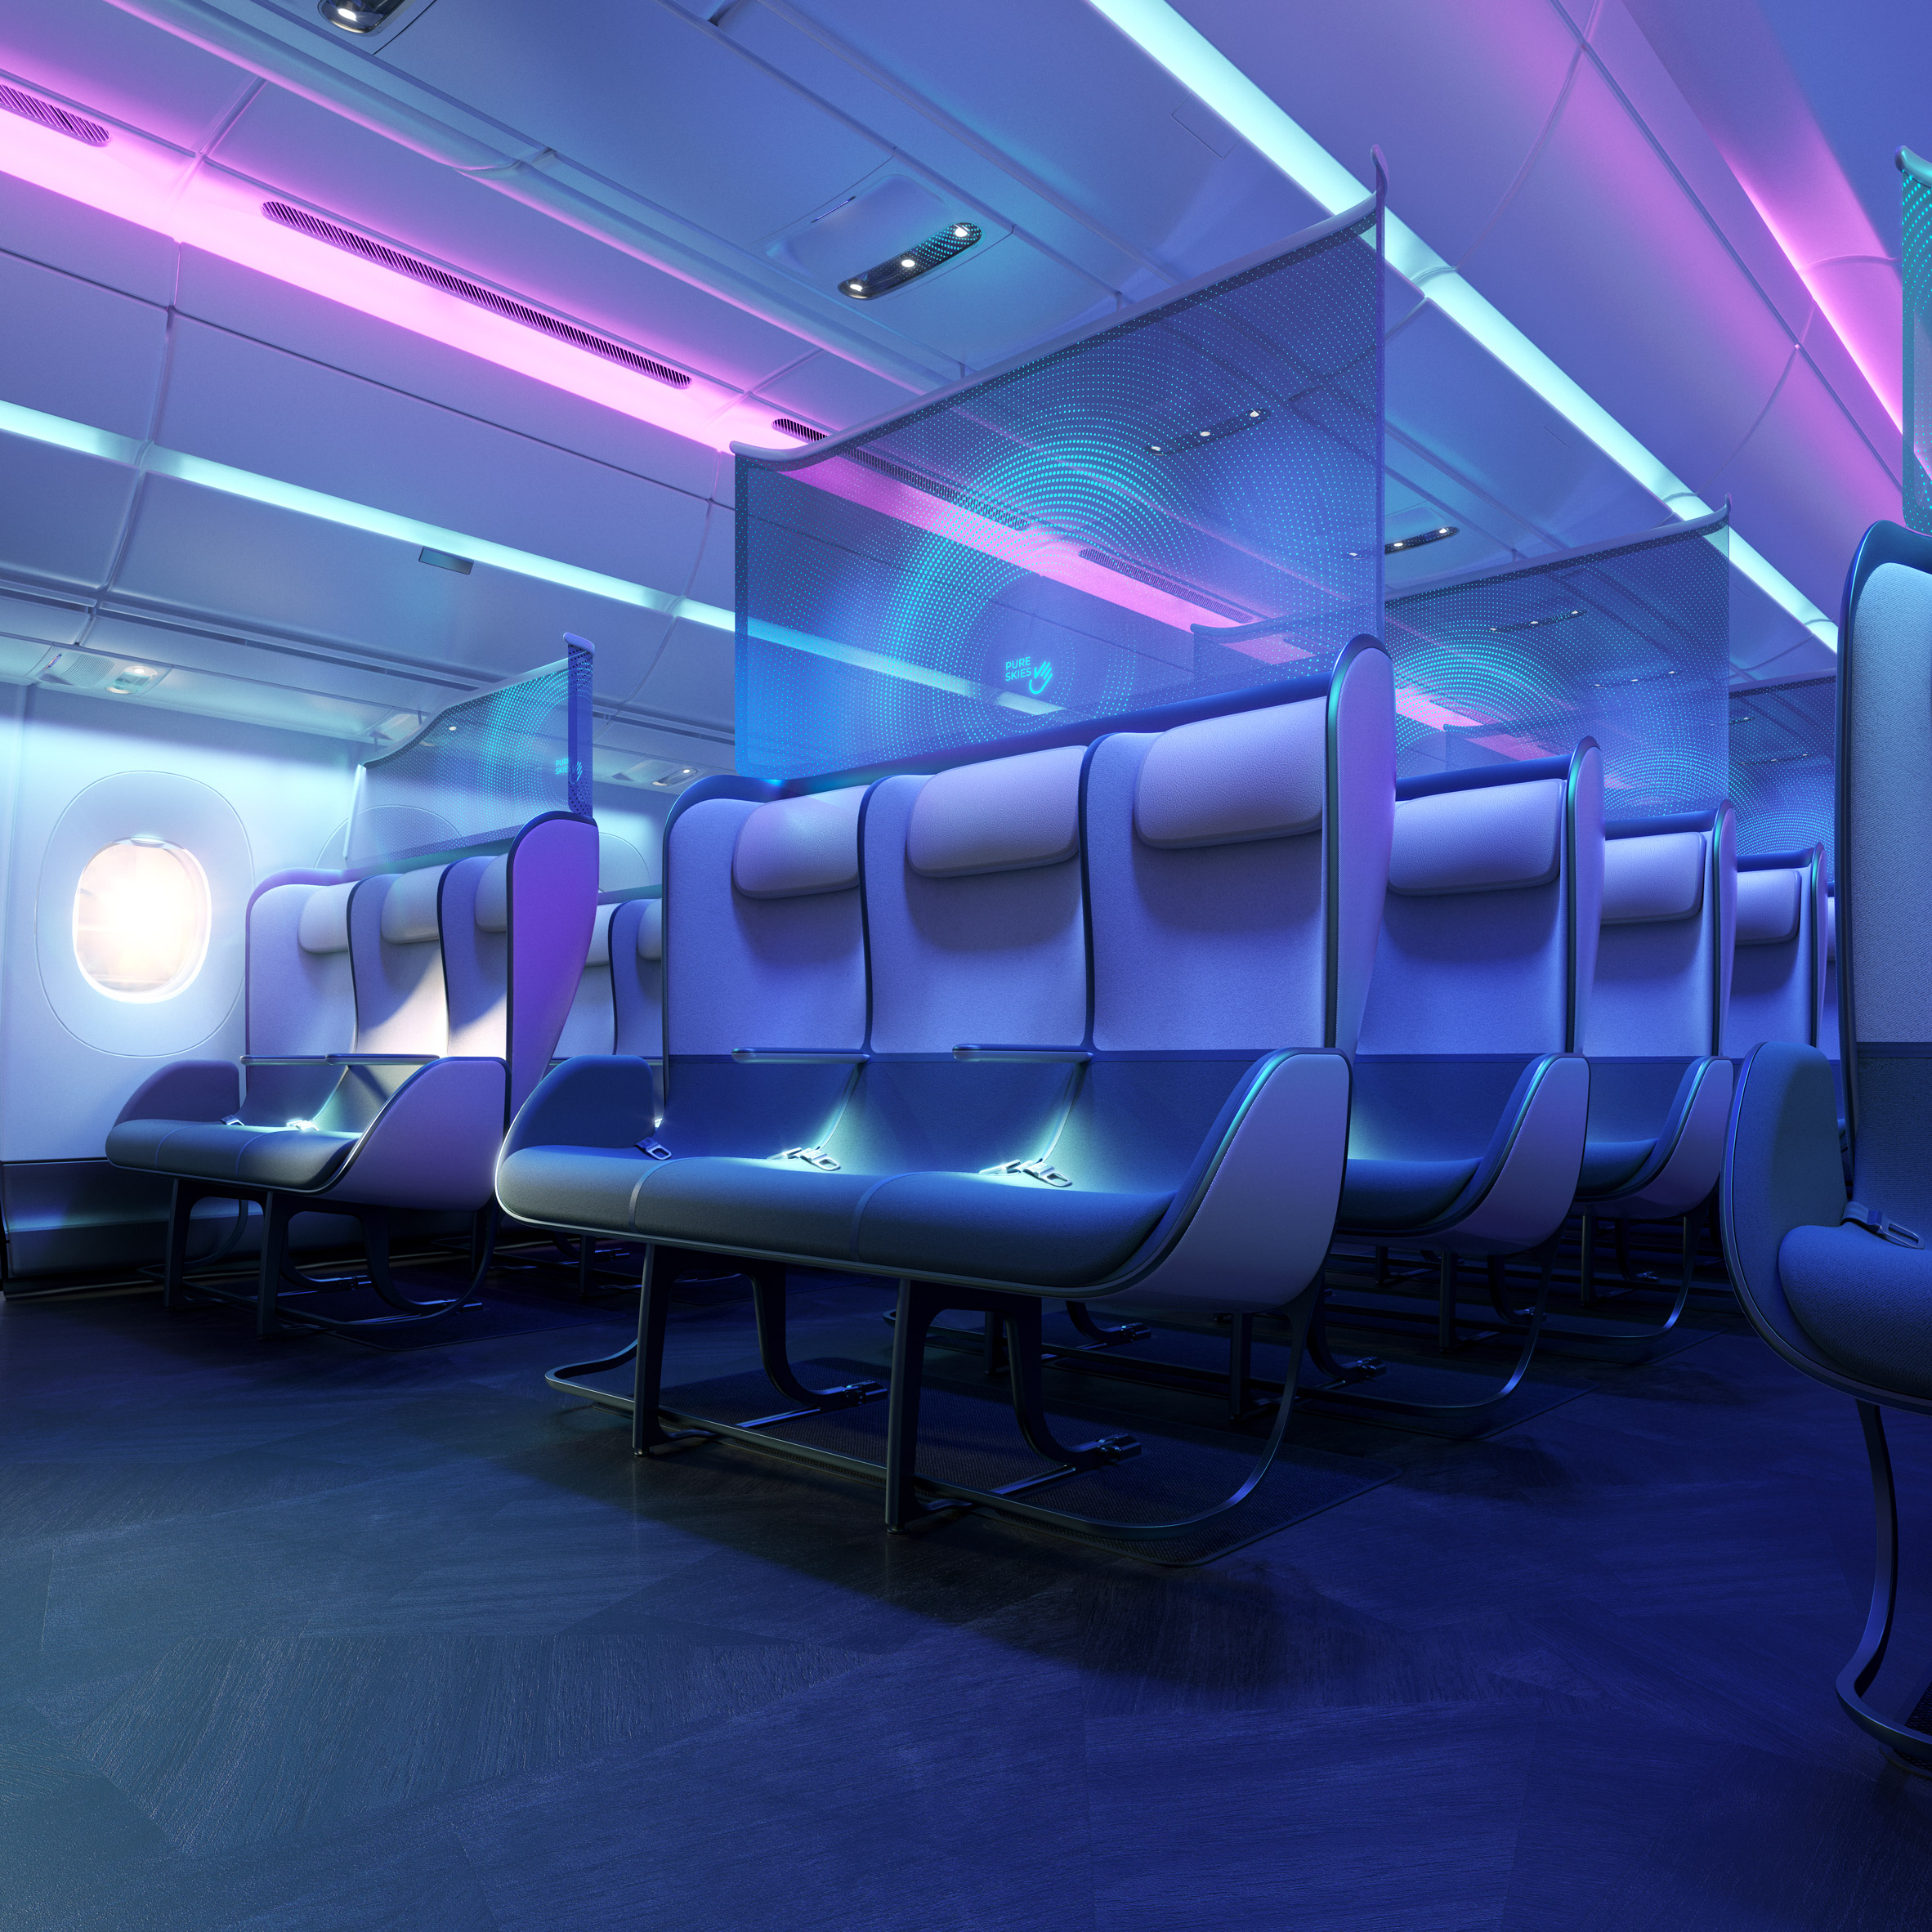 Priestmangoode Redesigns Air Travel For Life Post Covid